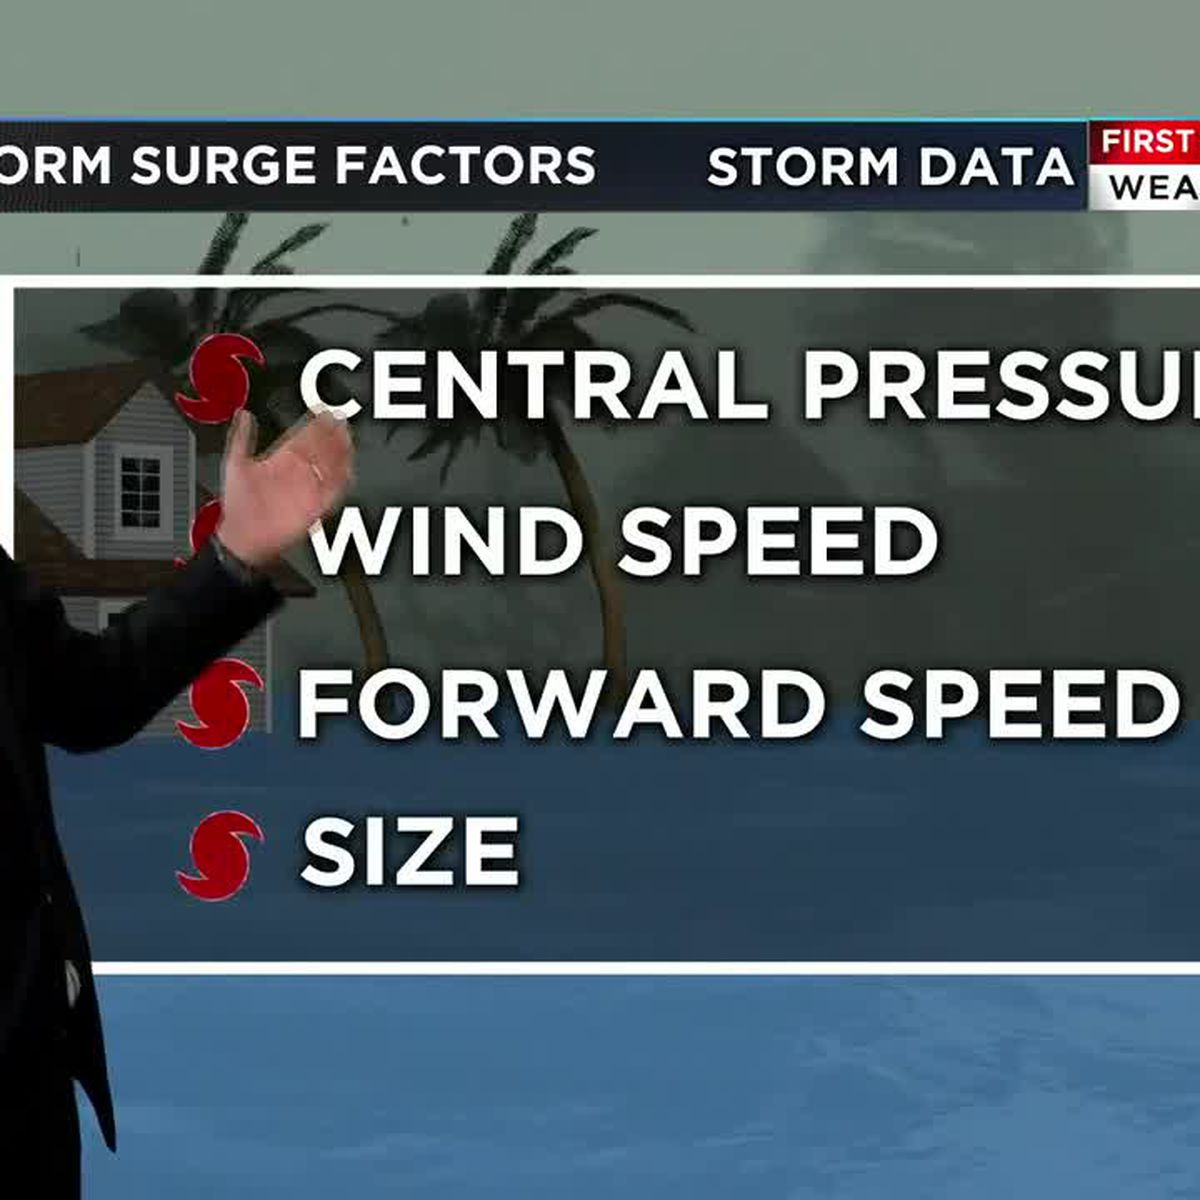 Storm surge the greatest risk during a tropical storm